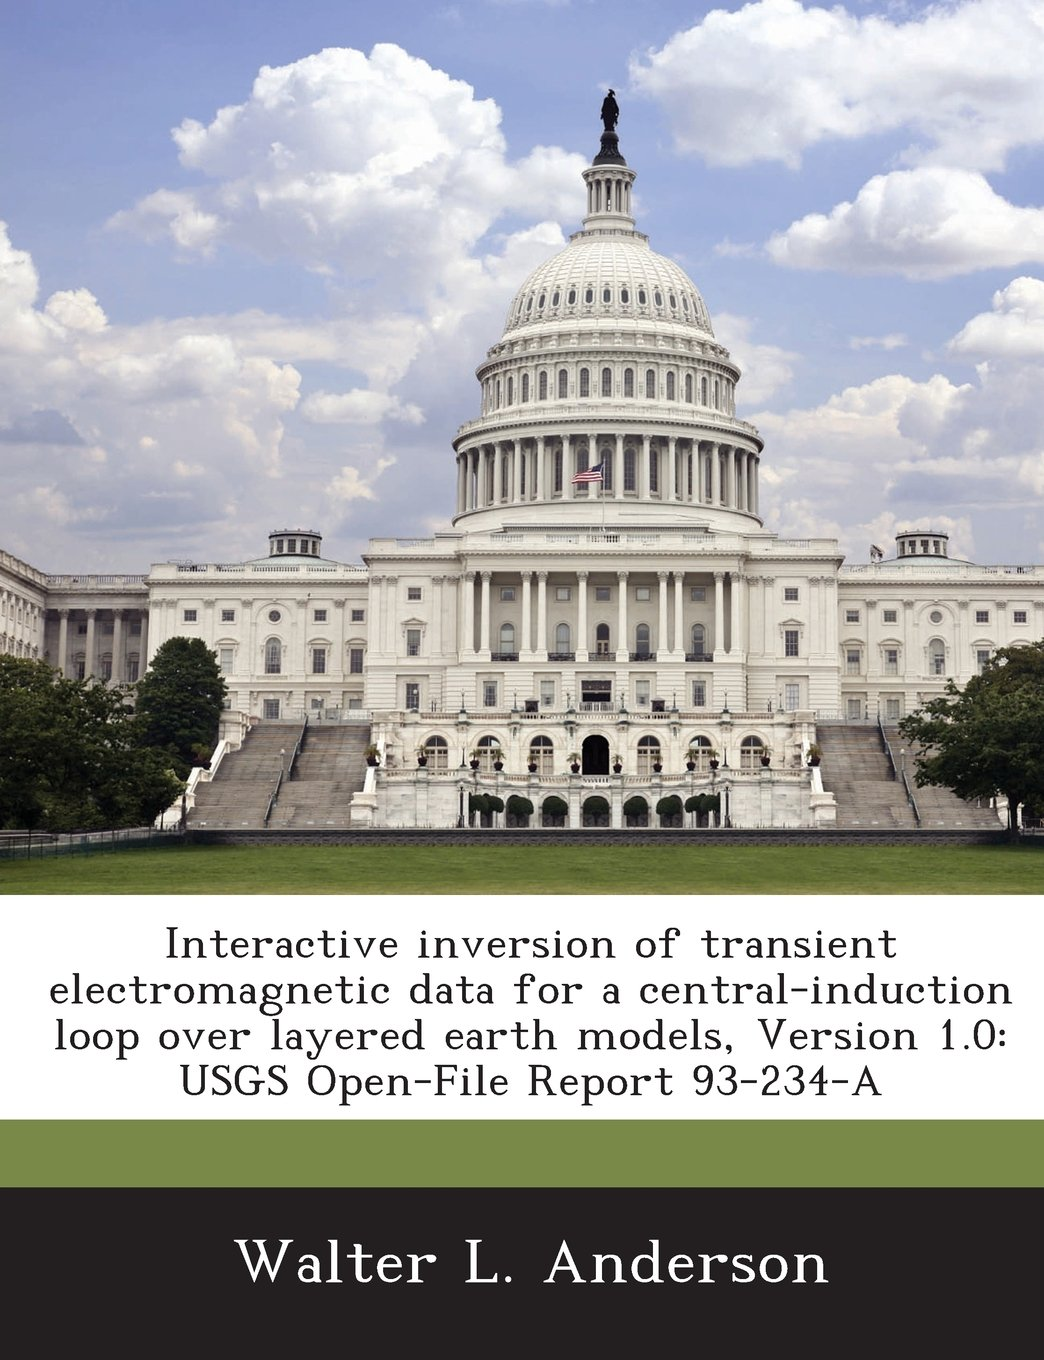 Download Interactive inversion of transient electromagnetic data for a central-induction loop over layered earth models, Version 1.0: USGS Open-File Report 93-234-A pdf